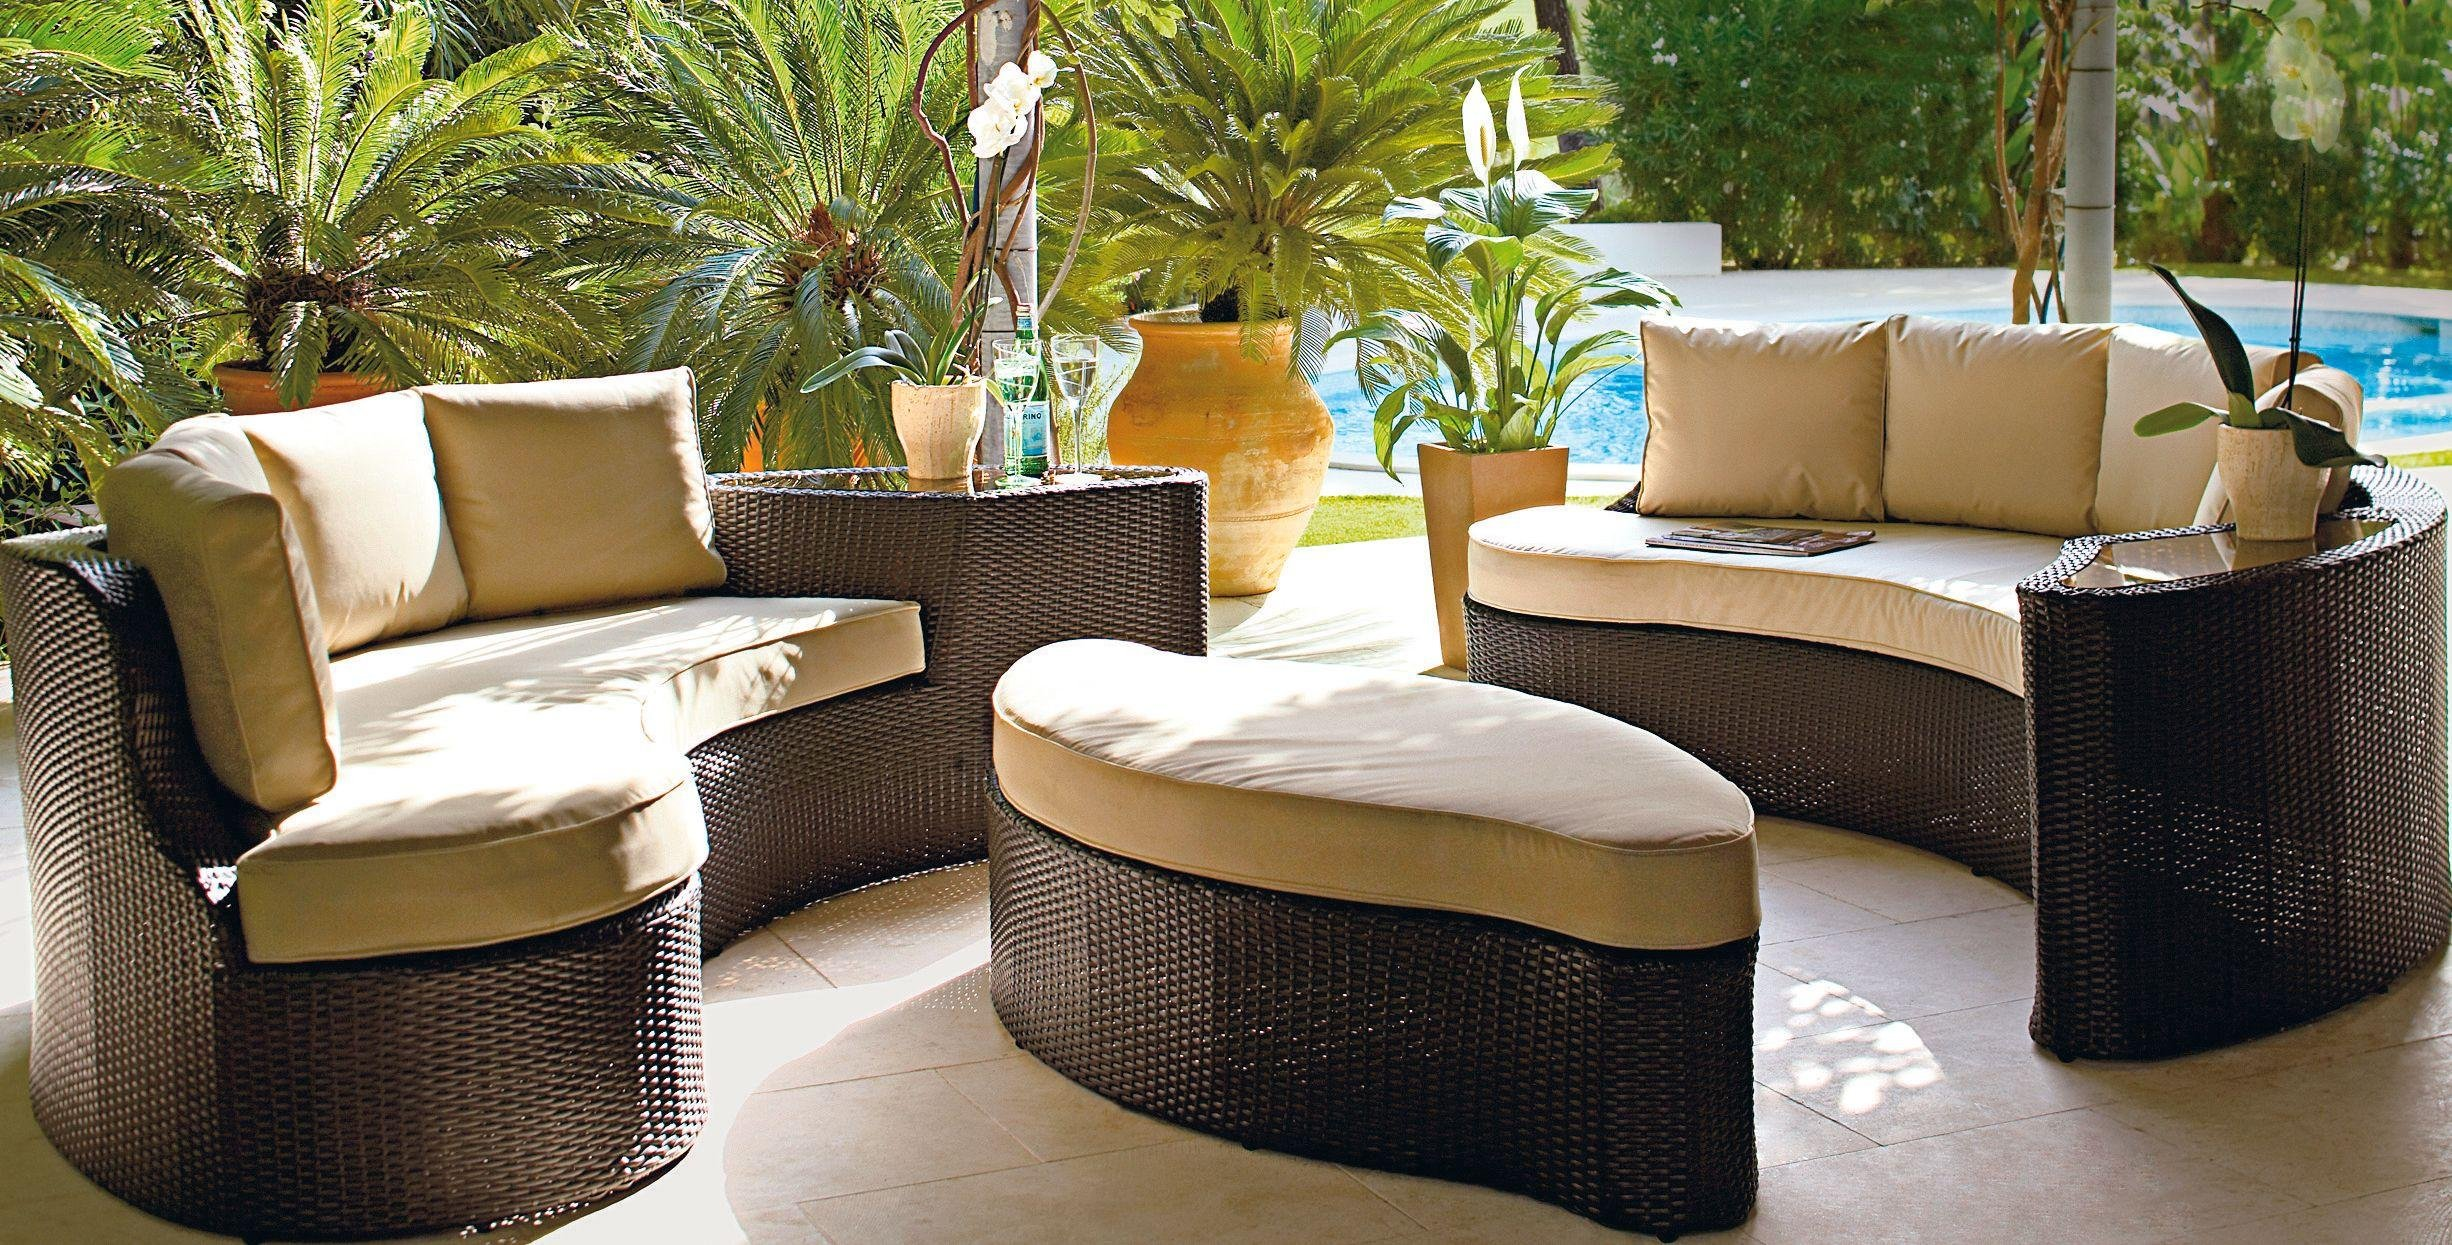 Buy Collection Rattan Effect 6 Seater Patio Sofa Set 2 Sofas at